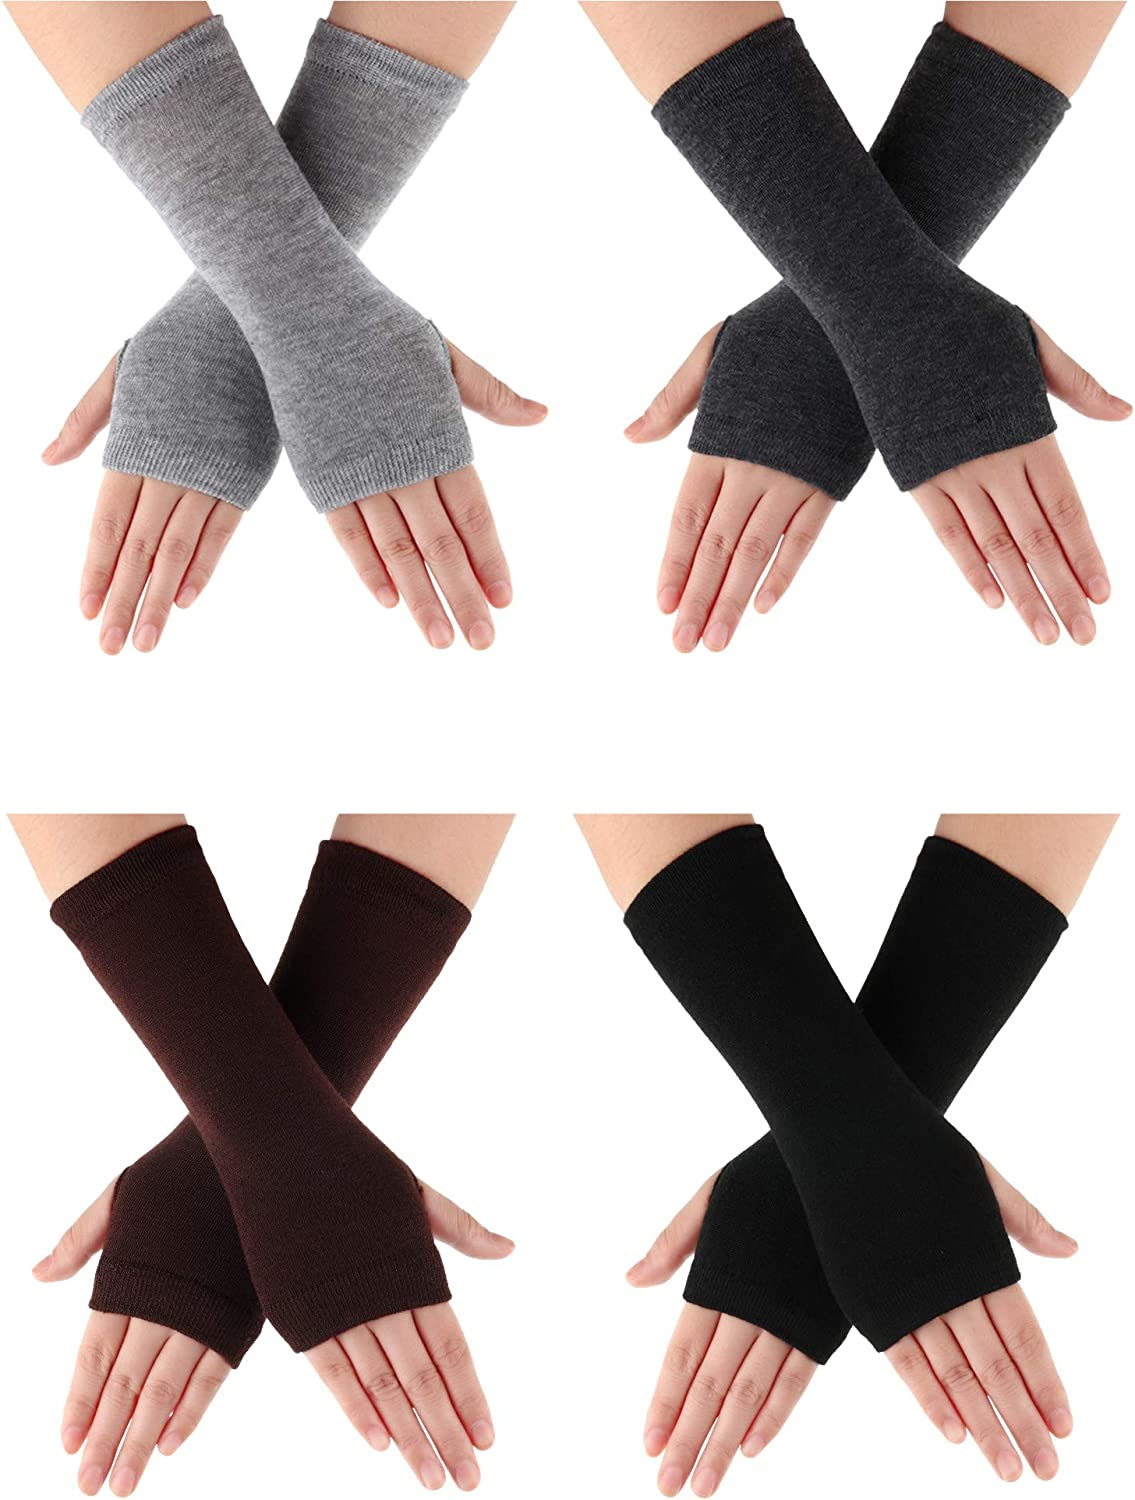 4 Pairs Wrist Fingerless Gloves with Thumb Hole Unisex Cashmere Warm Gloves (Color Set 4)